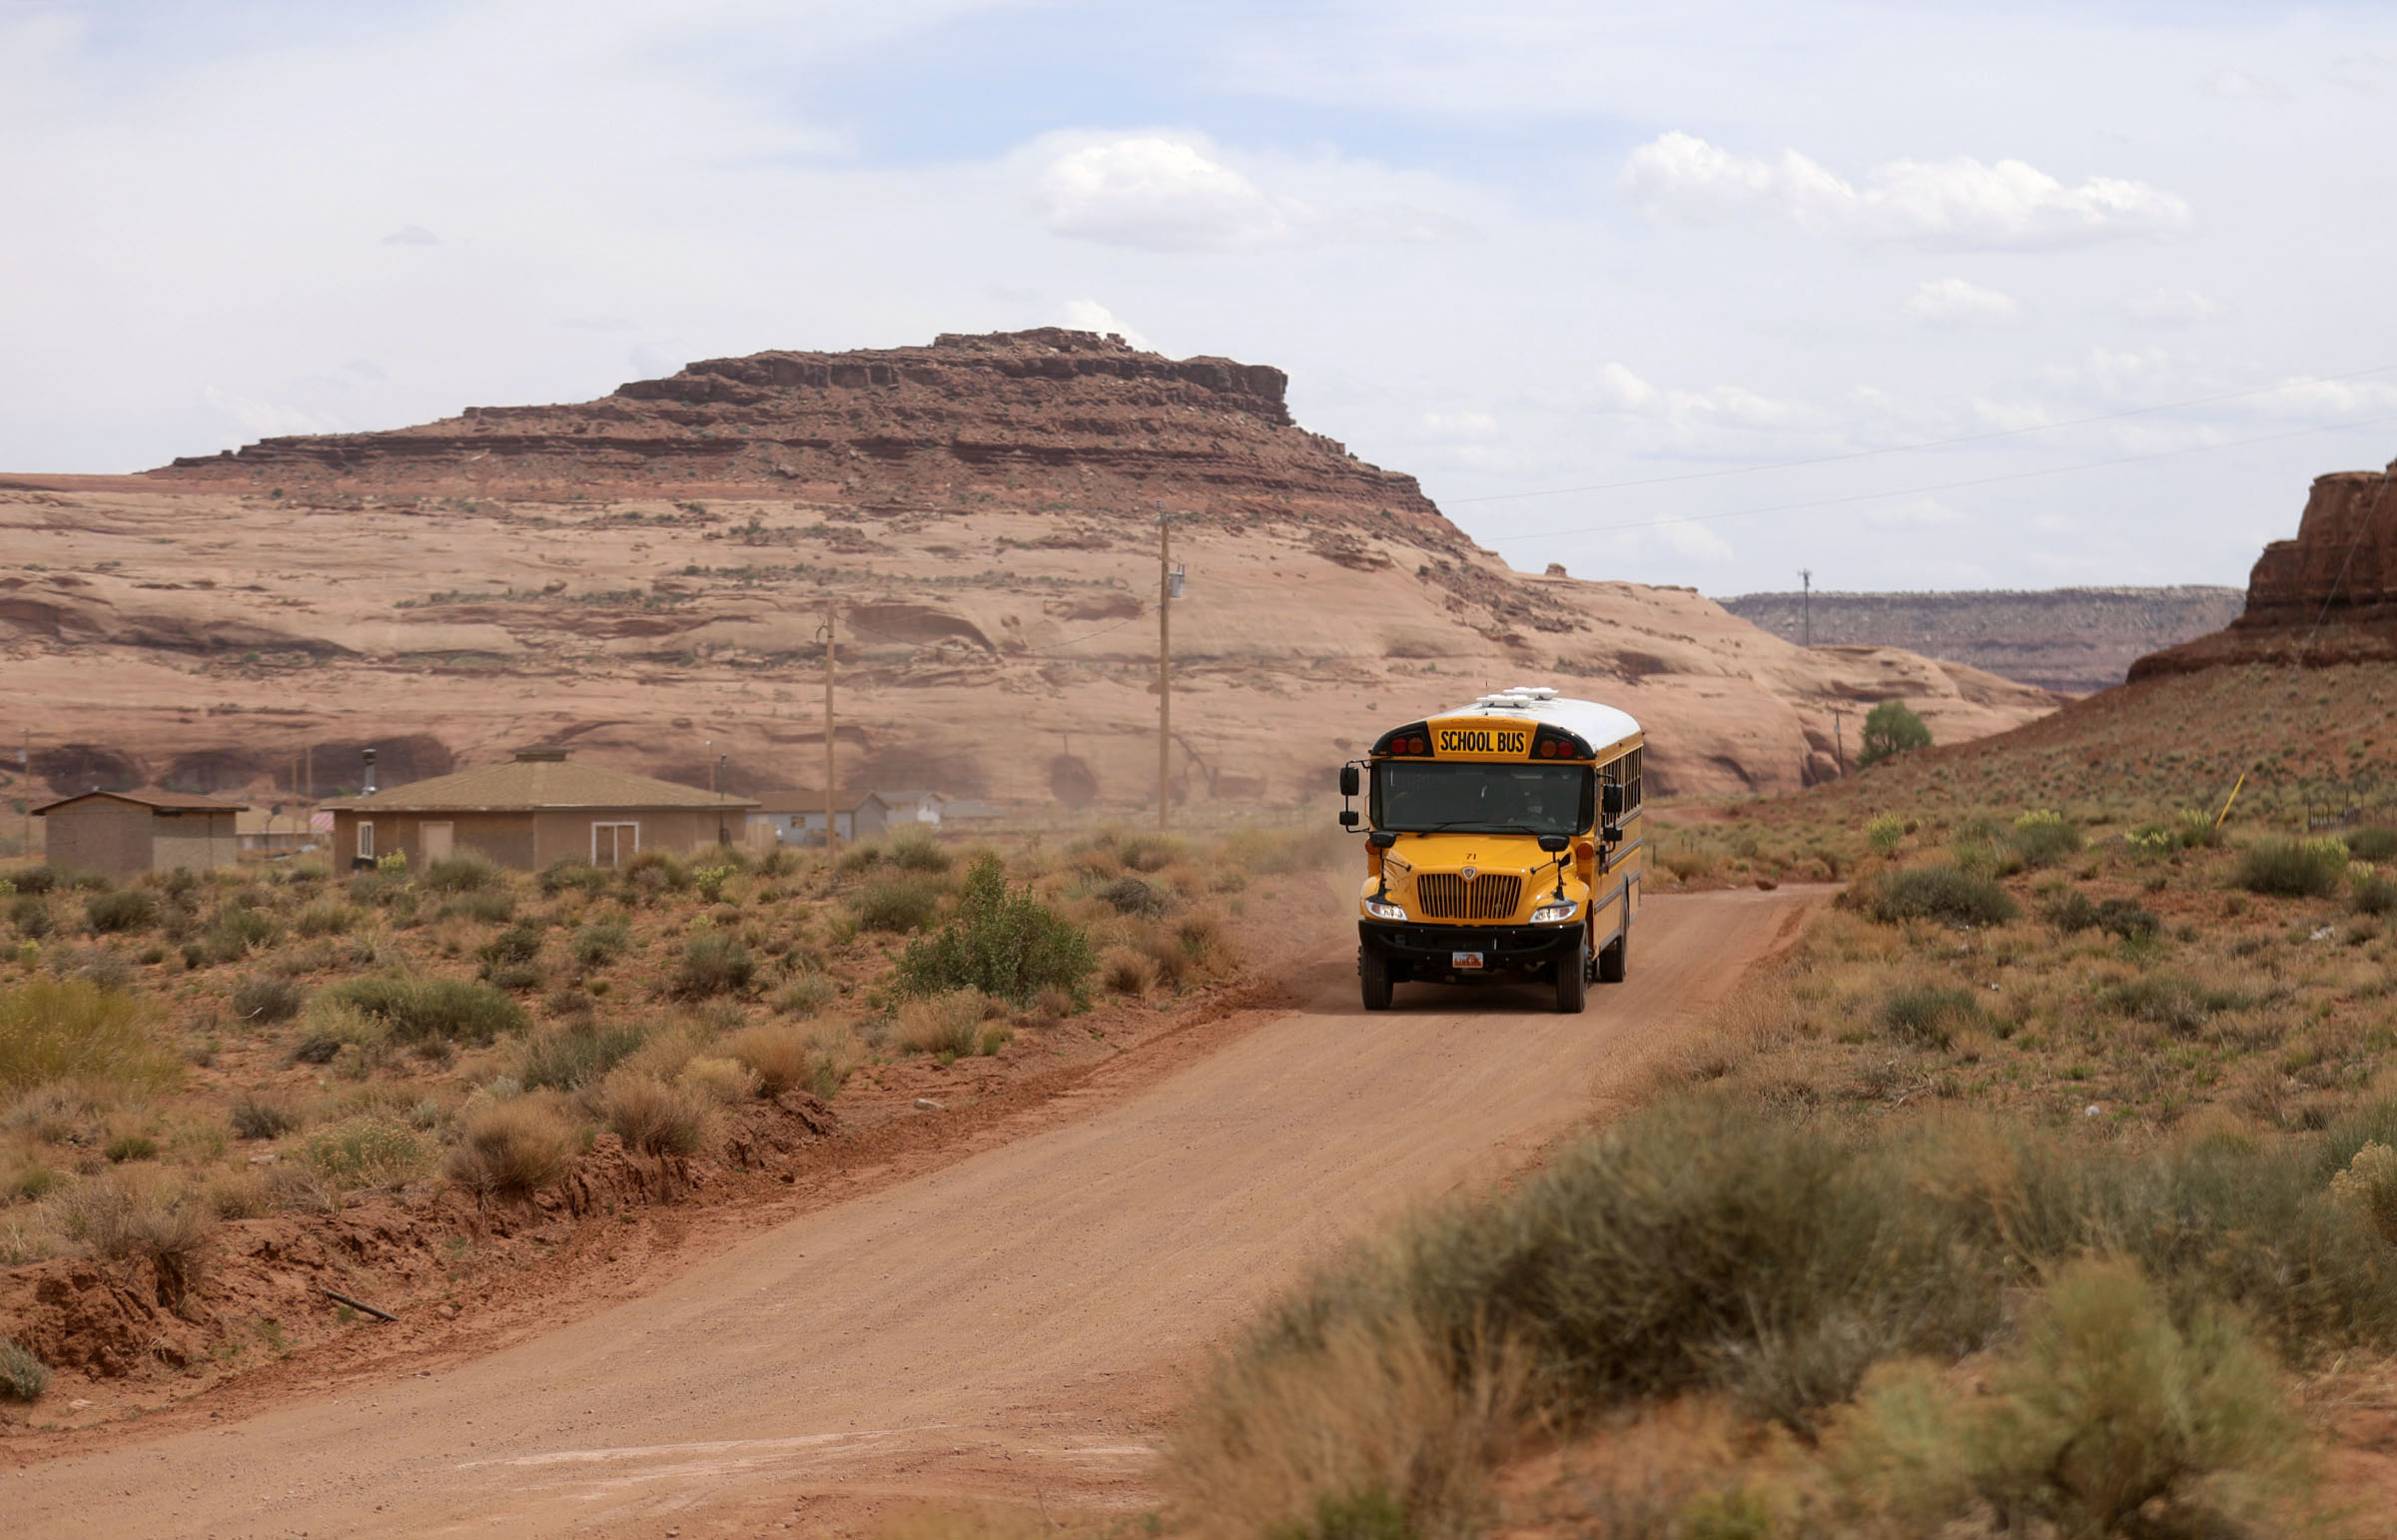 A school bus delivering food and homework during the pandemic.